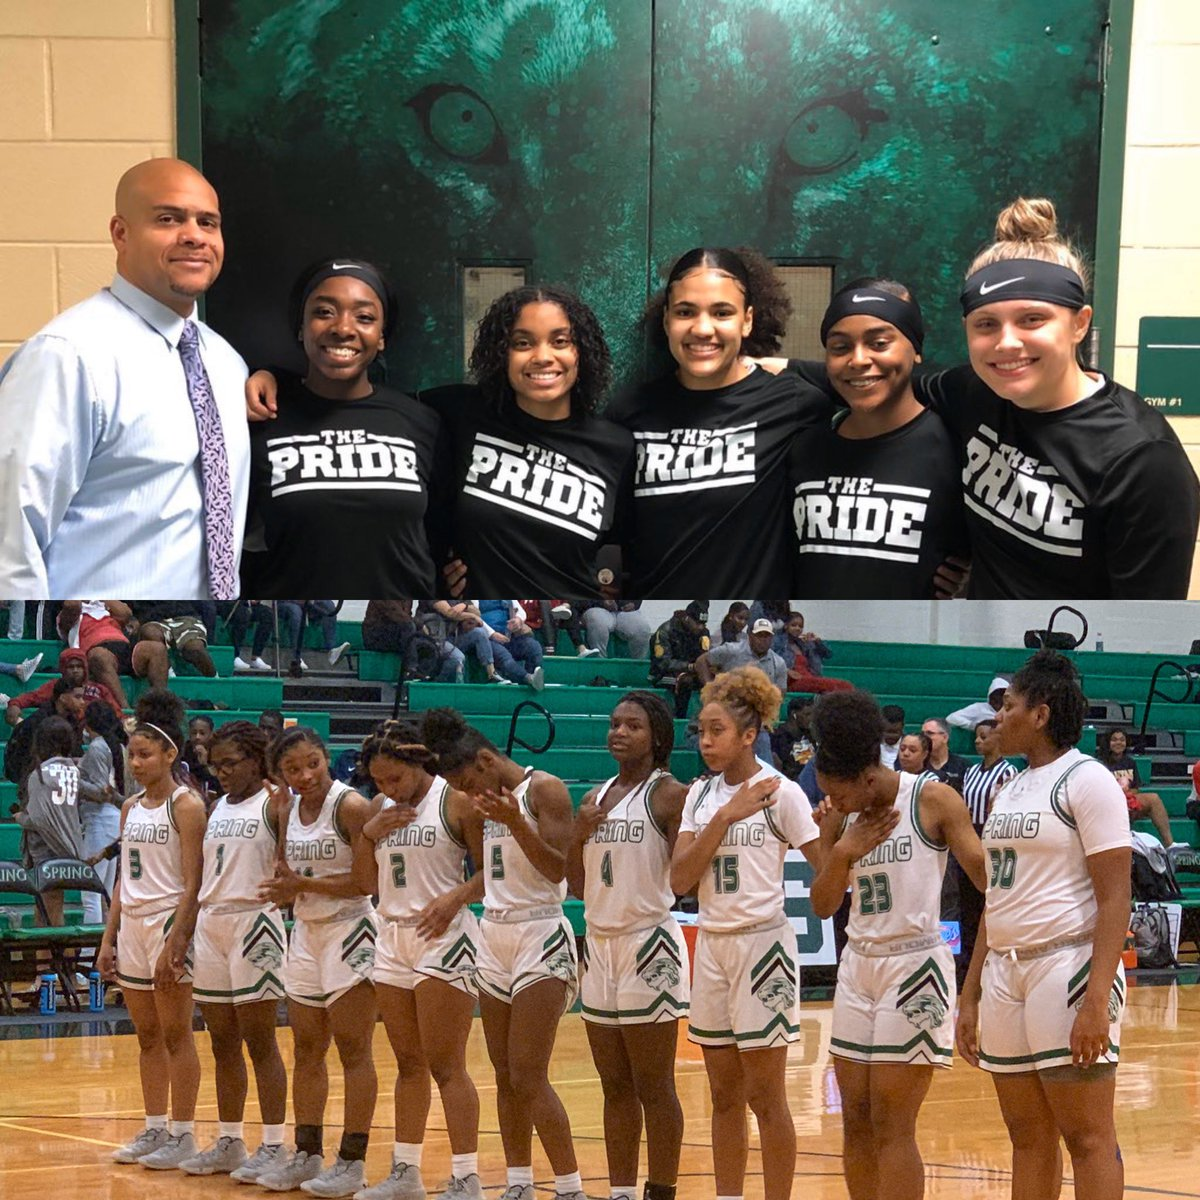 Congrats to Coach Prejean on his 100th win! You deserve it! @SpringISD @SPRINGHIGHLIONS @LadyLionBB #mbybob https://t.co/8ysximuGKX